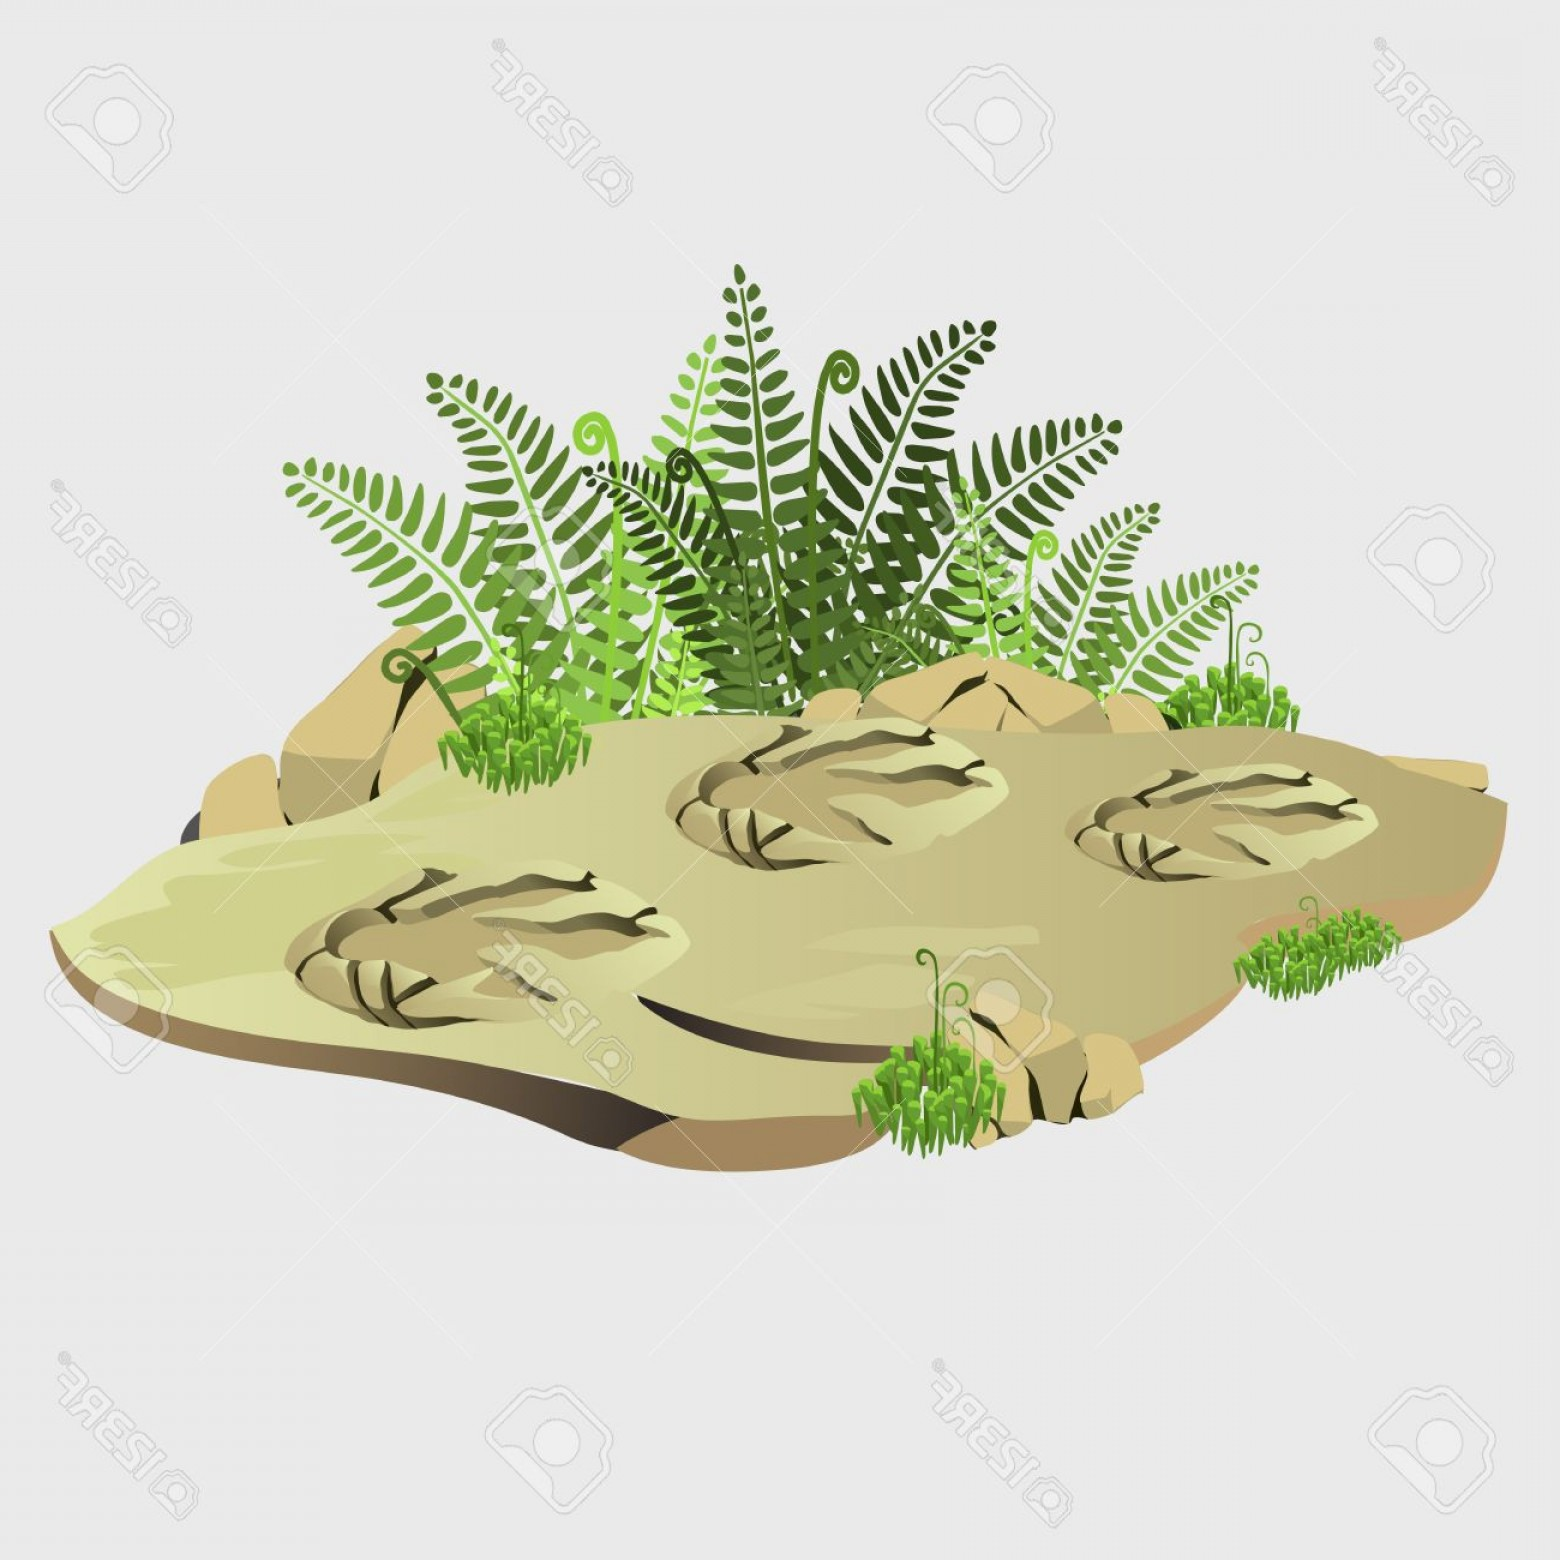 Geographic Leaf Vector: Photoancient Imprint Of Wild Animal On Earth Image Of Landscape For Research Geographic Or Adventure Desi